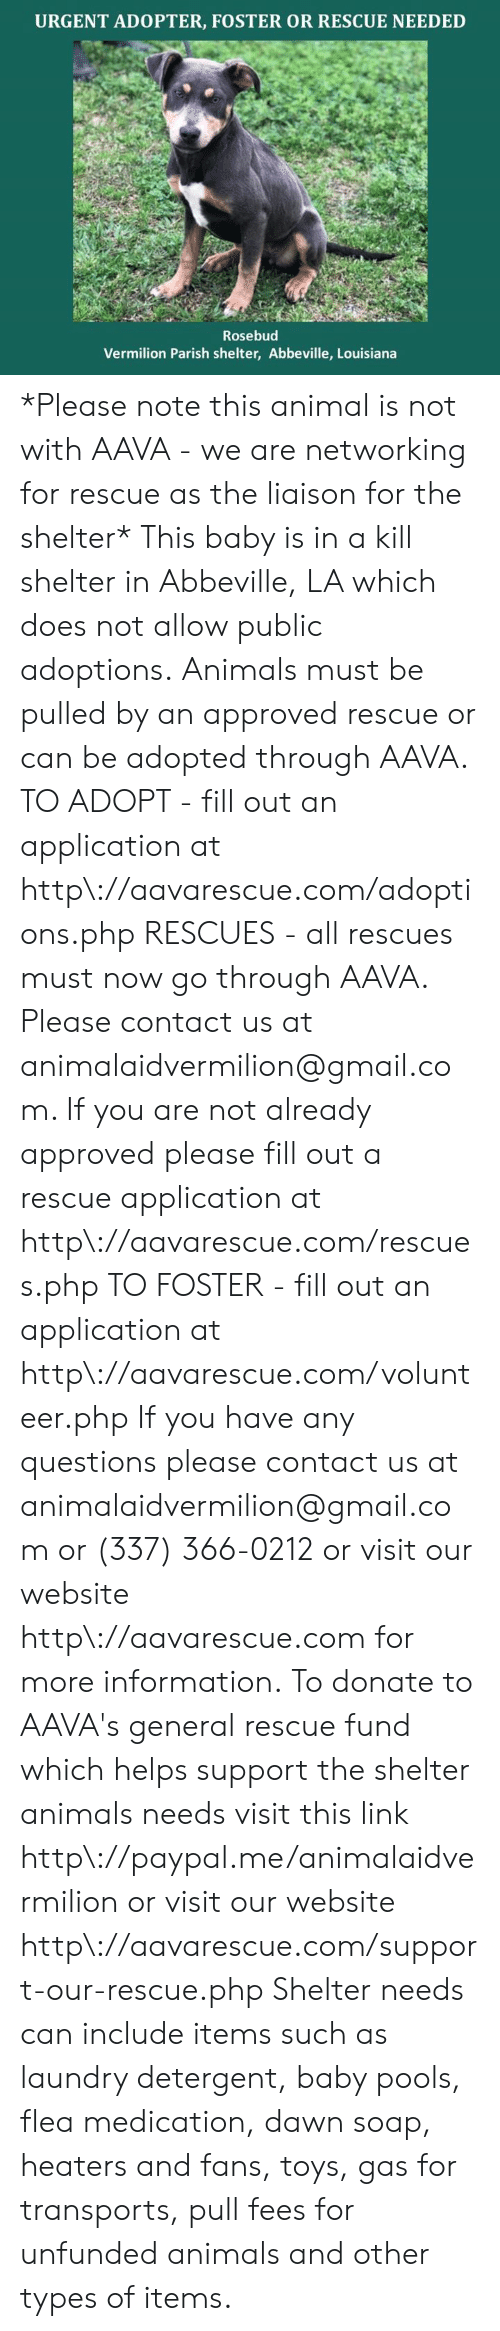 Fill Out: URGENT ADOPTER, FOSTER OR RESCUE NEEDED  Rosebud  Vermilion Parish shelter, Abbeville, Louisiana *Please note this animal is not with AAVA - we are networking for rescue as the liaison for the shelter* This baby is in a kill shelter in Abbeville, LA which does not allow public adoptions. Animals must be pulled by an approved rescue or can be adopted through AAVA.  TO ADOPT - fill out an application at http\://aavarescue.com/adoptions.php  RESCUES - all rescues must now go through AAVA. Please contact us at animalaidvermilion@gmail.com. If you are not already approved please fill out a rescue application at http\://aavarescue.com/rescues.php  TO FOSTER - fill out an application at http\://aavarescue.com/volunteer.php  If you have any questions please contact us at animalaidvermilion@gmail.com or (337) 366-0212 or visit our website http\://aavarescue.com for more information.  To donate to AAVA's general rescue fund which helps support the shelter animals needs visit this link http\://paypal.me/animalaidvermilion or visit our website http\://aavarescue.com/support-our-rescue.php Shelter needs can include items such as laundry detergent, baby pools, flea medication, dawn soap, heaters and fans, toys, gas for transports, pull fees for unfunded animals and other types of items.